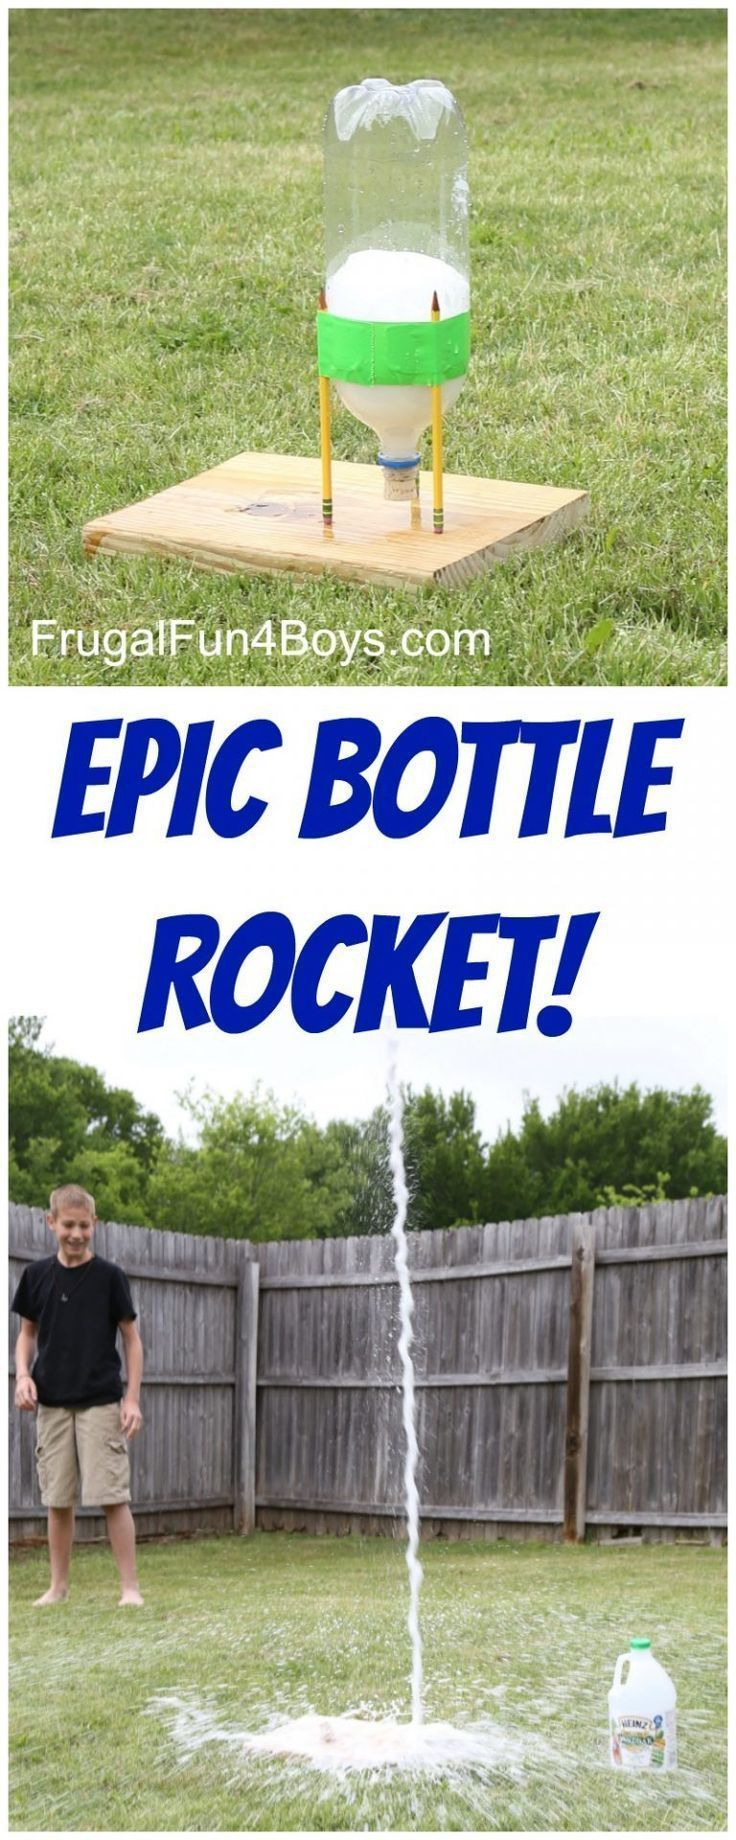 Over 15 Awesome Boredom Buster Fun Science Experiment Ideas to do With the Kids perfect